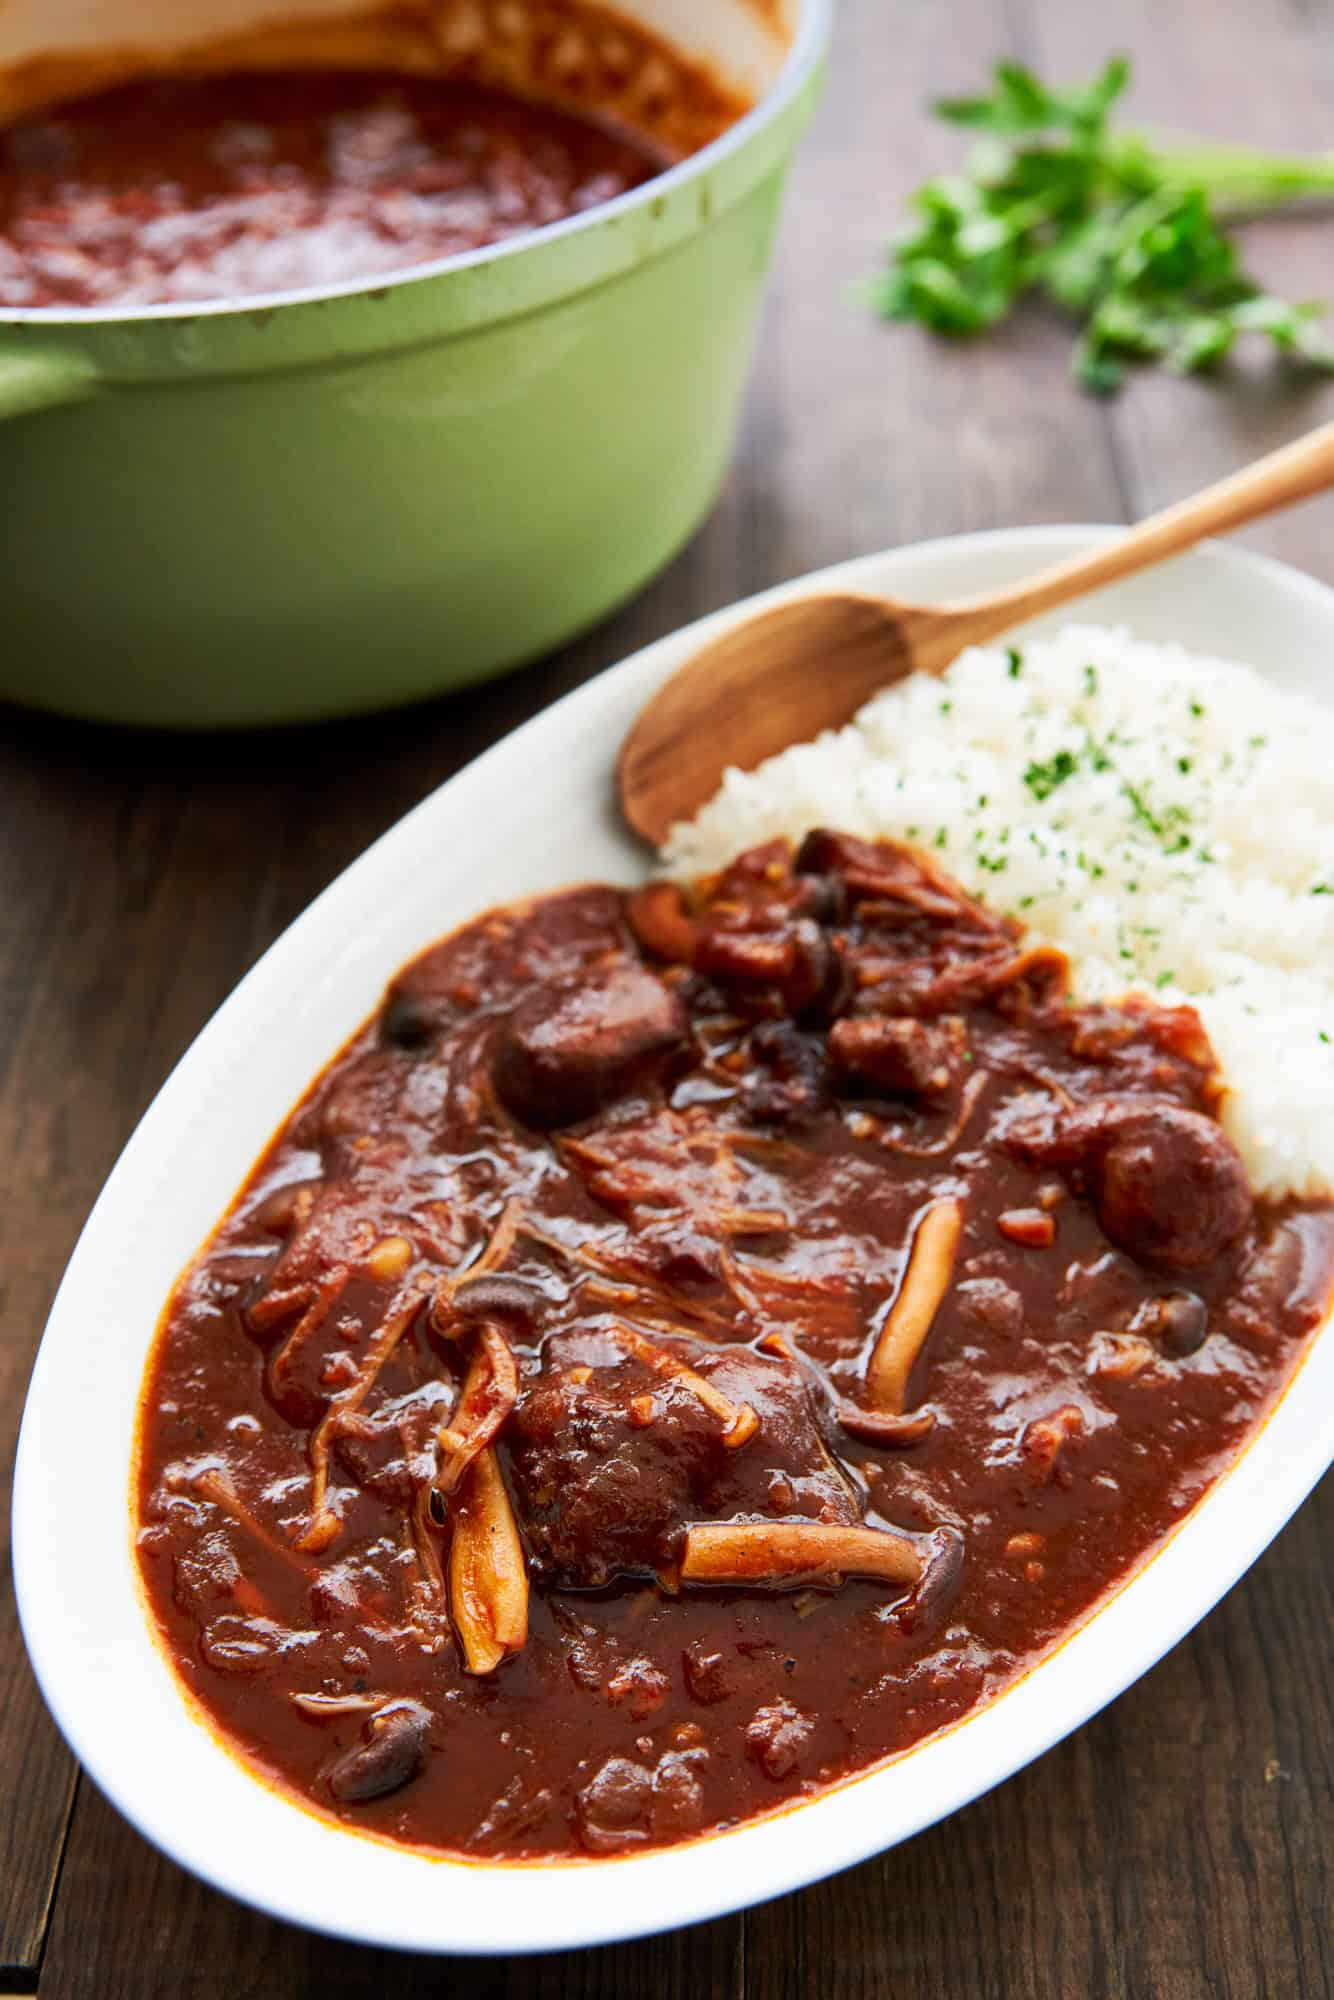 With a flavor somewhere between Boeuf Bourguignon and Sloppy Joes, Hayashi Rice is a Japanese-style beef stew that's a family favorite in households around Japan.